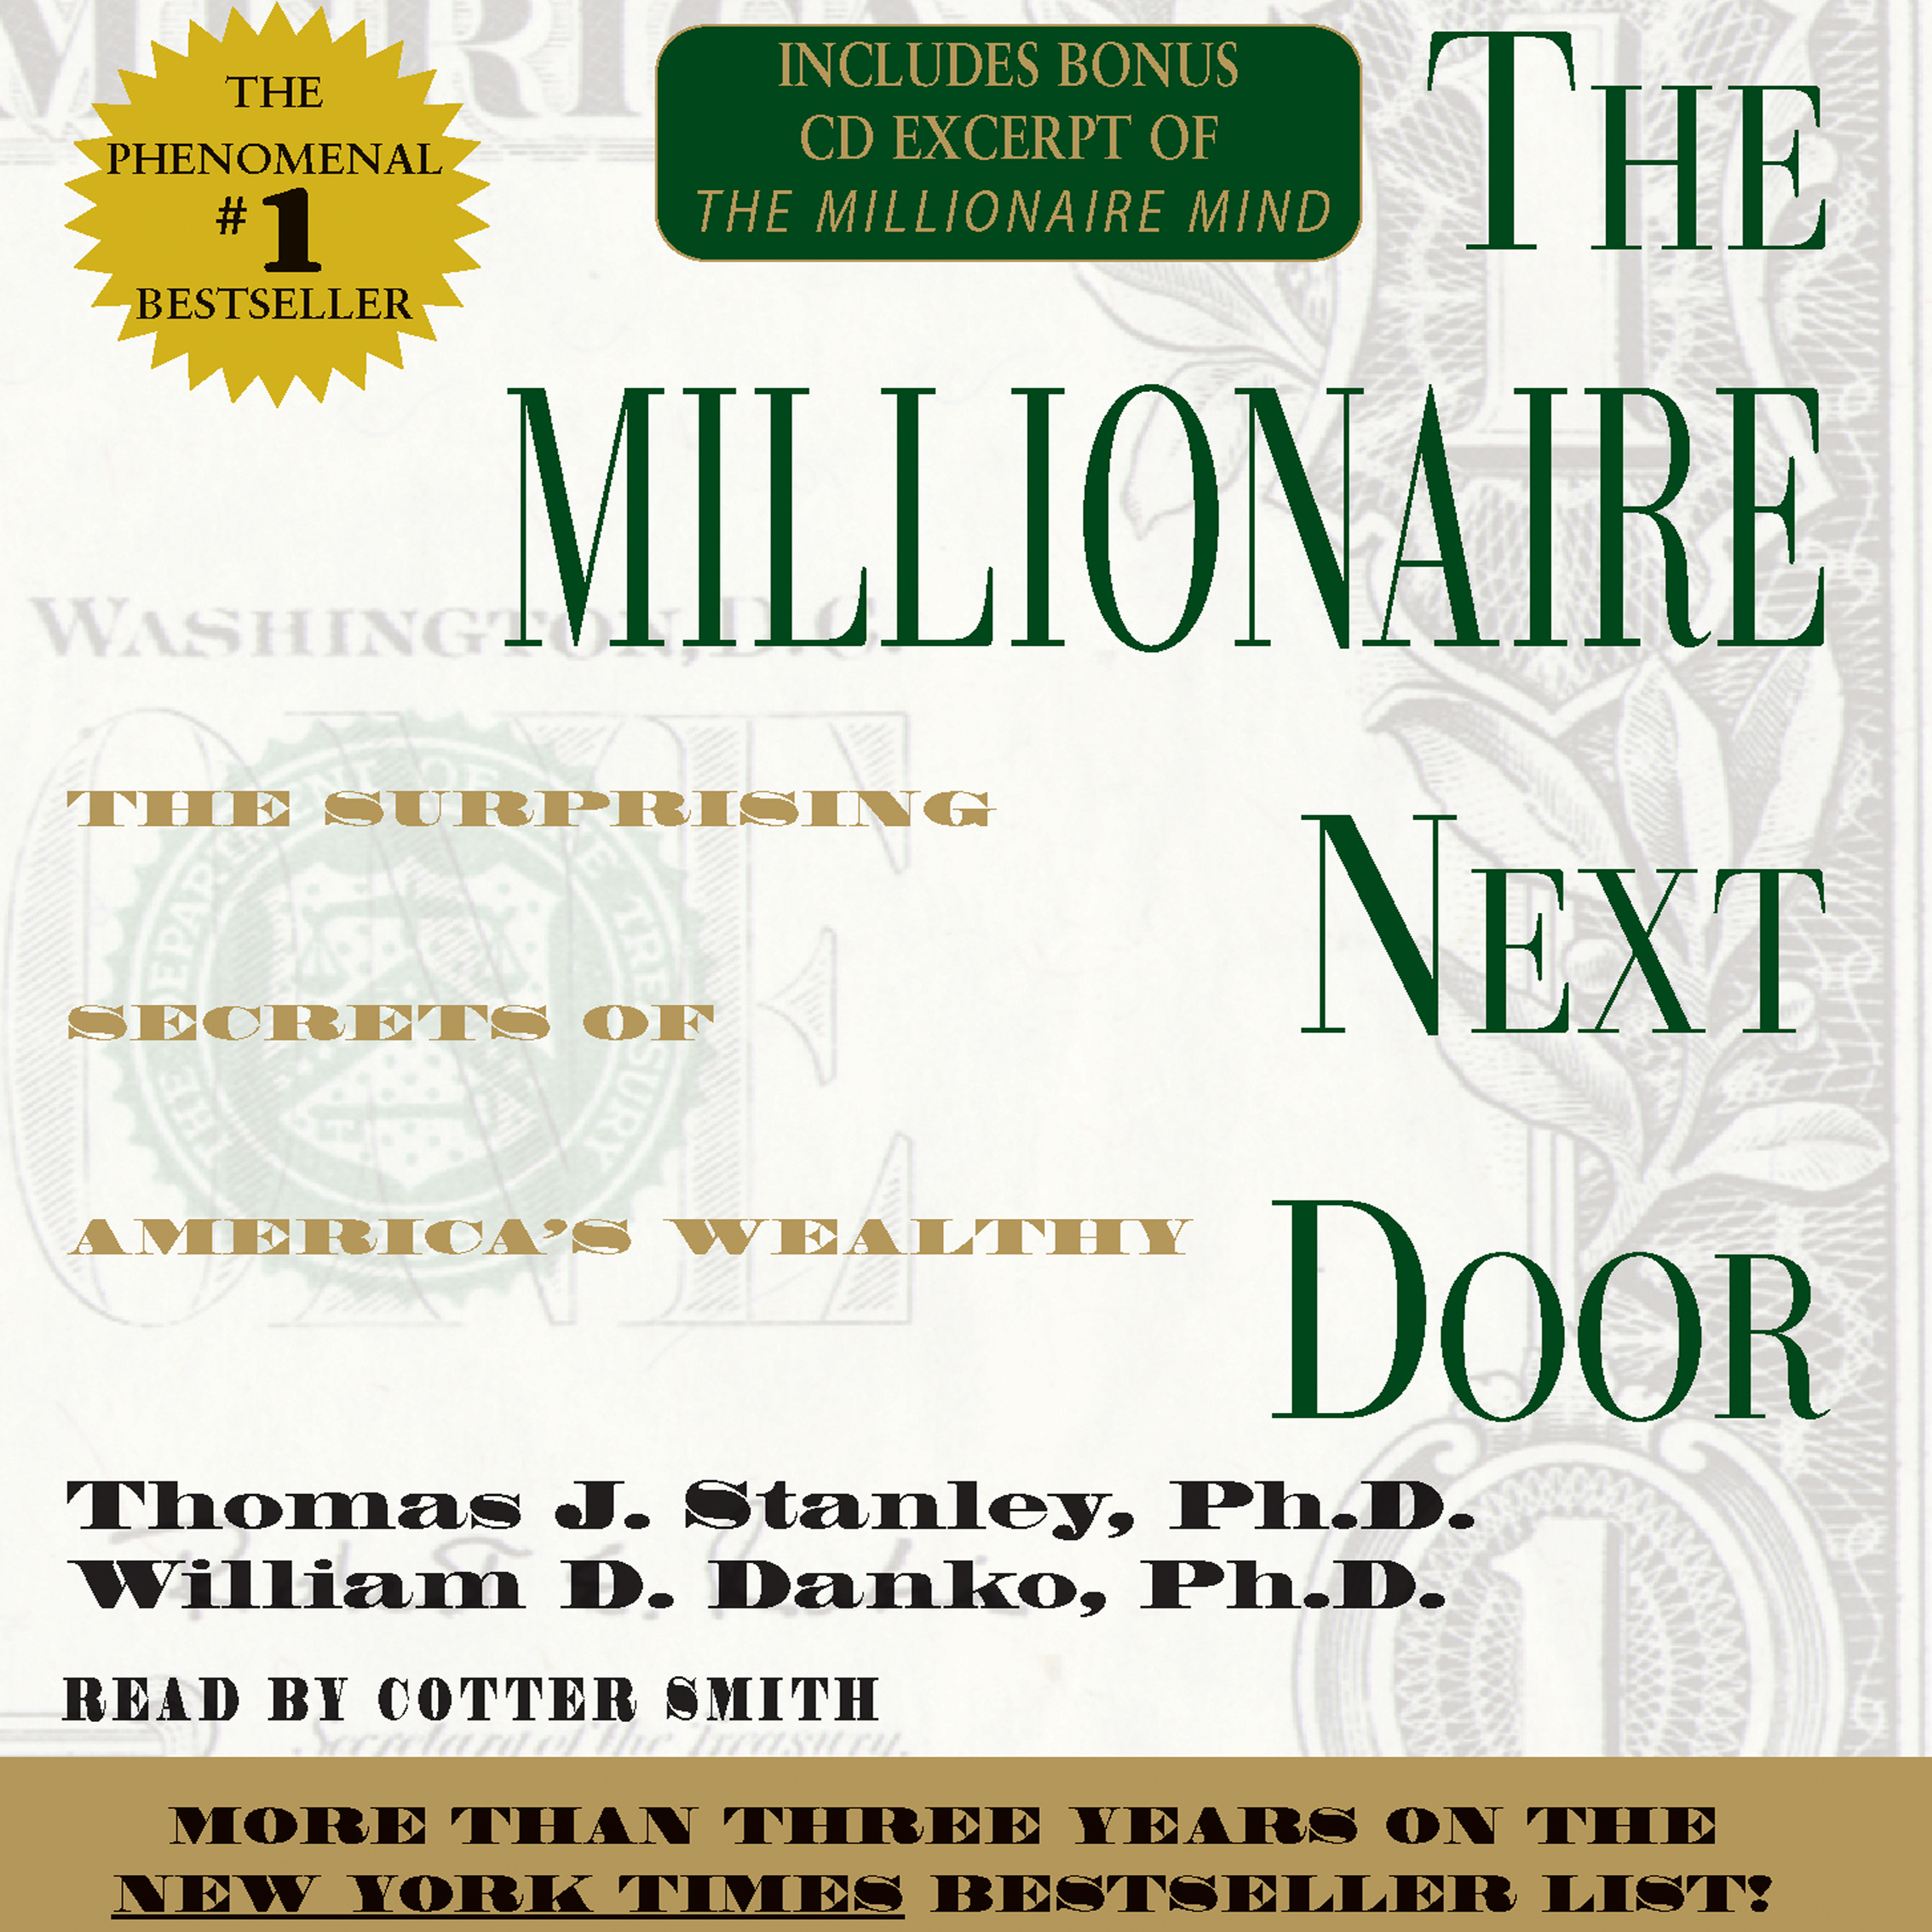 the millionaire next door 19 things the millionaire next door won't tell you len penzo, len penzo dot com mar 11, 2014, 2:10 pm an overpriced luxury car won't impress a millionaire christopher .